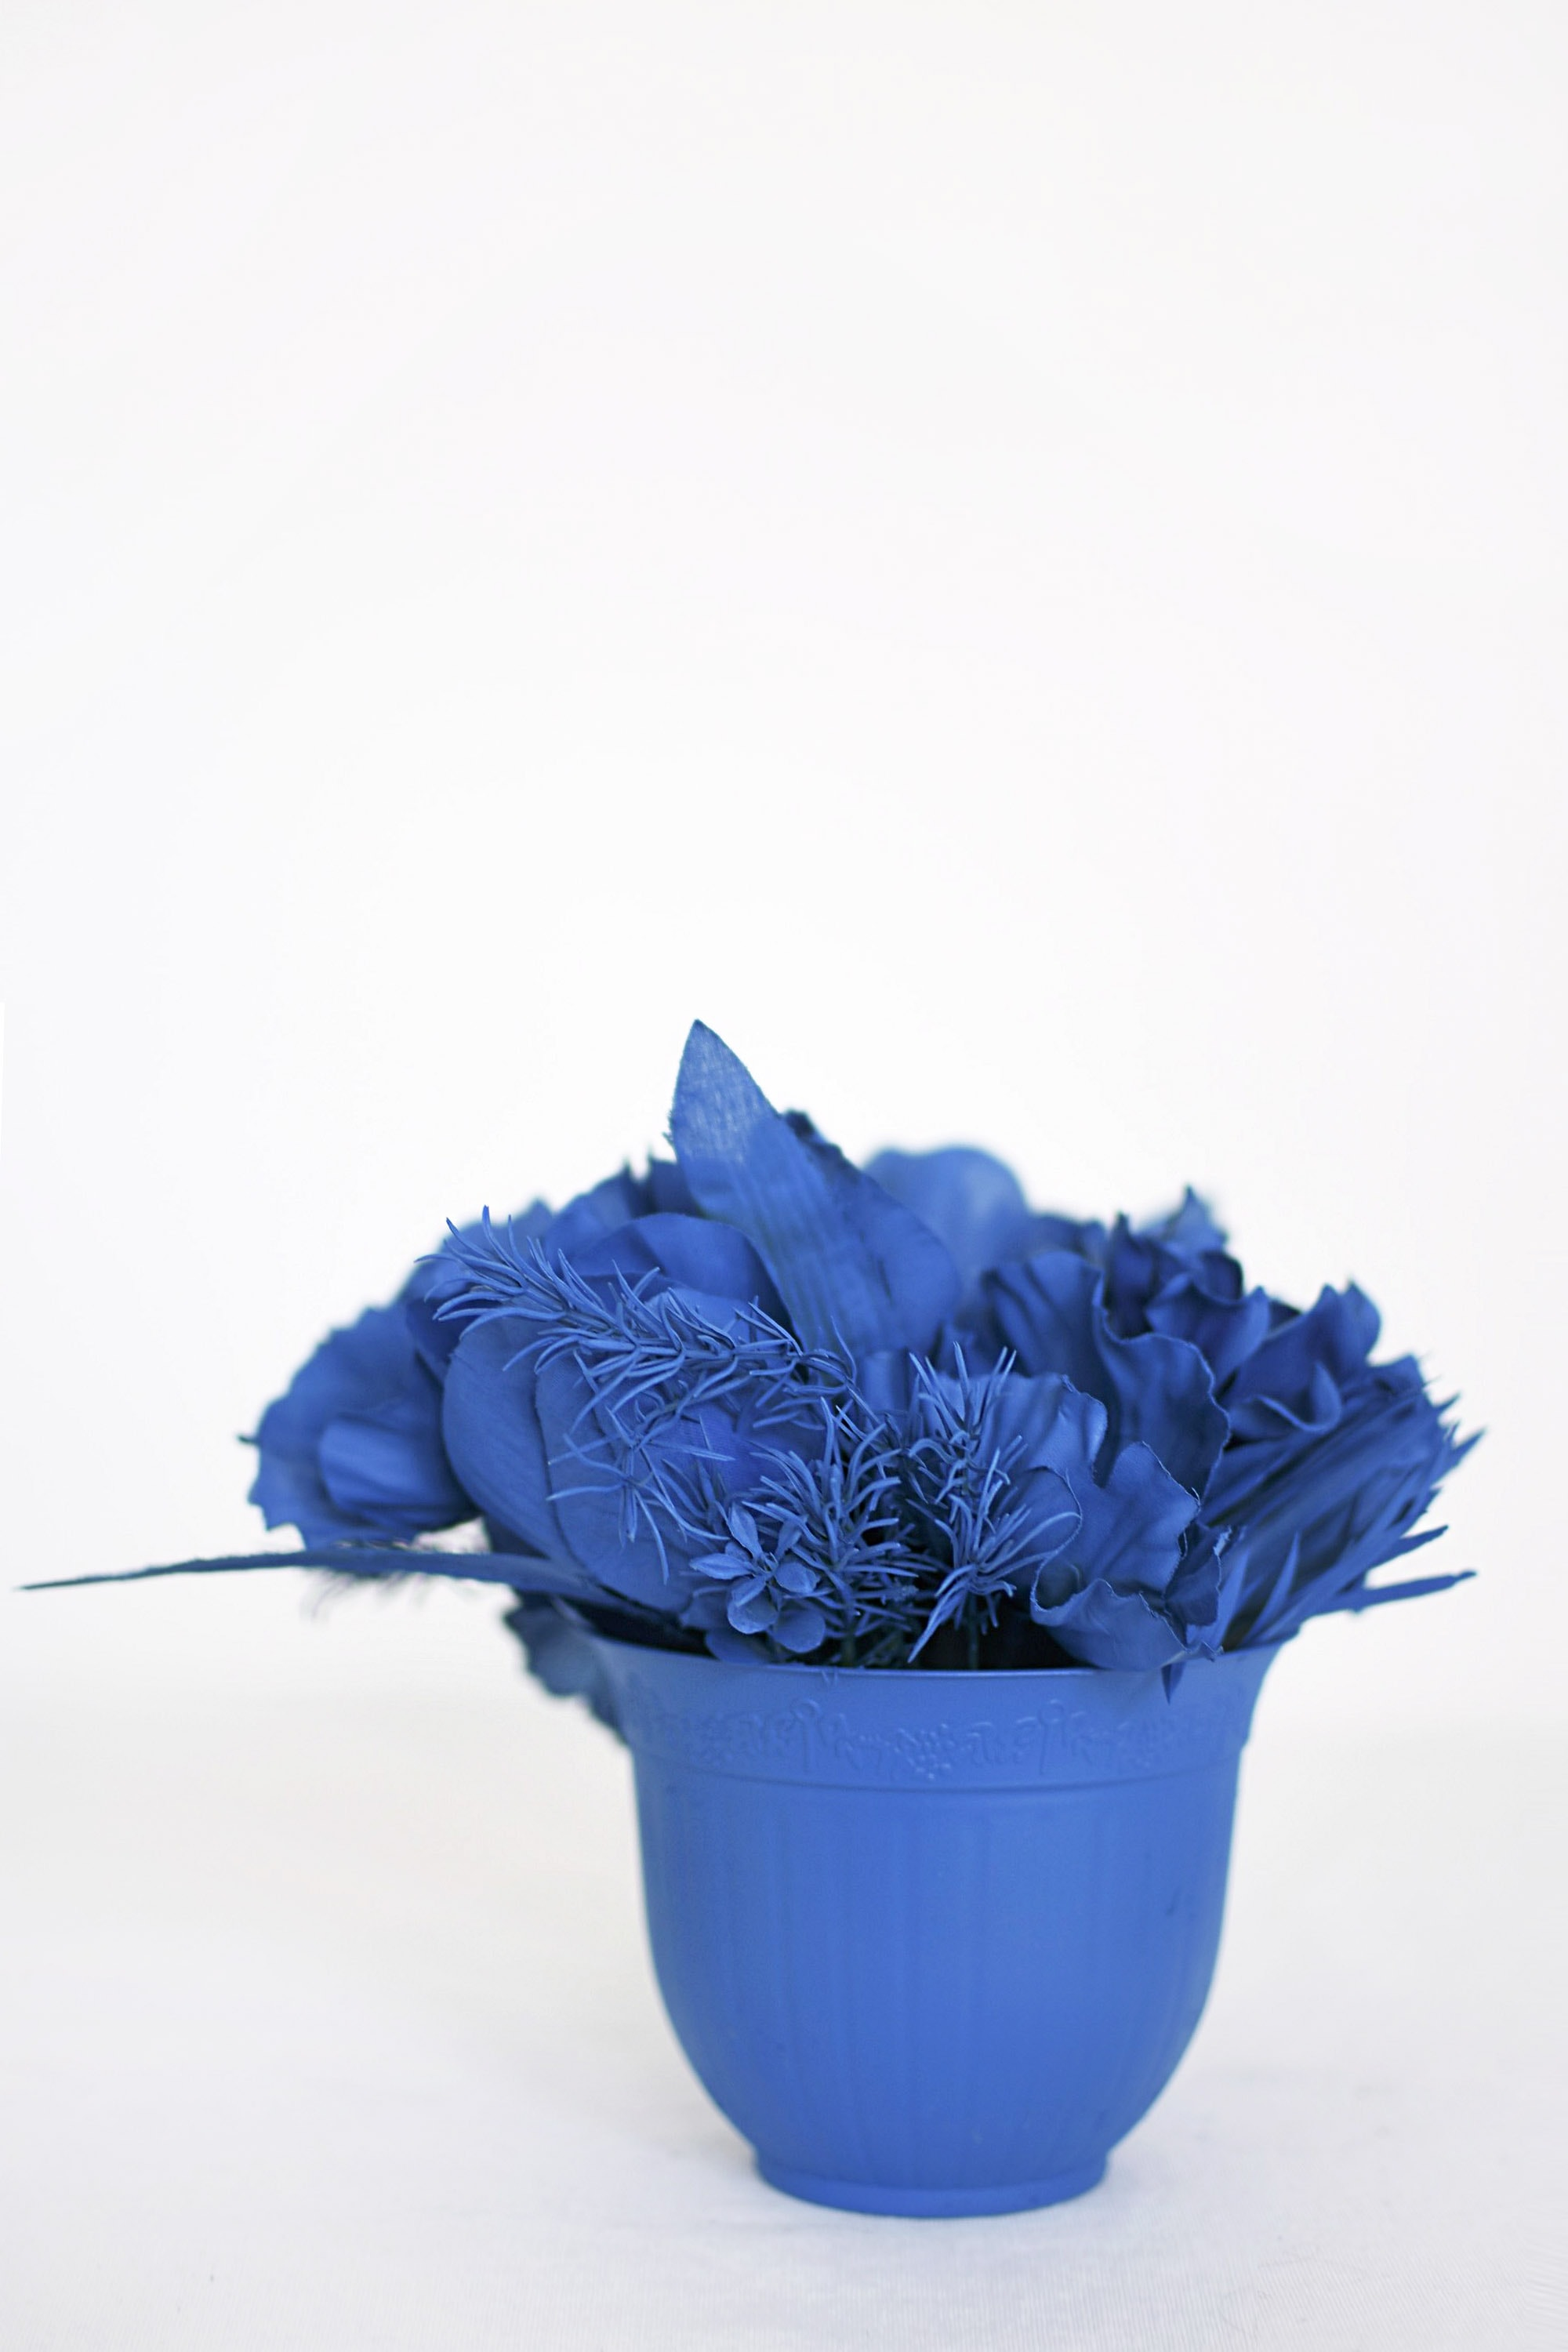 Create bright blue Monochrome Flower Bouquet Displays. Delineate Your Dwelling #monochromatic #blueart